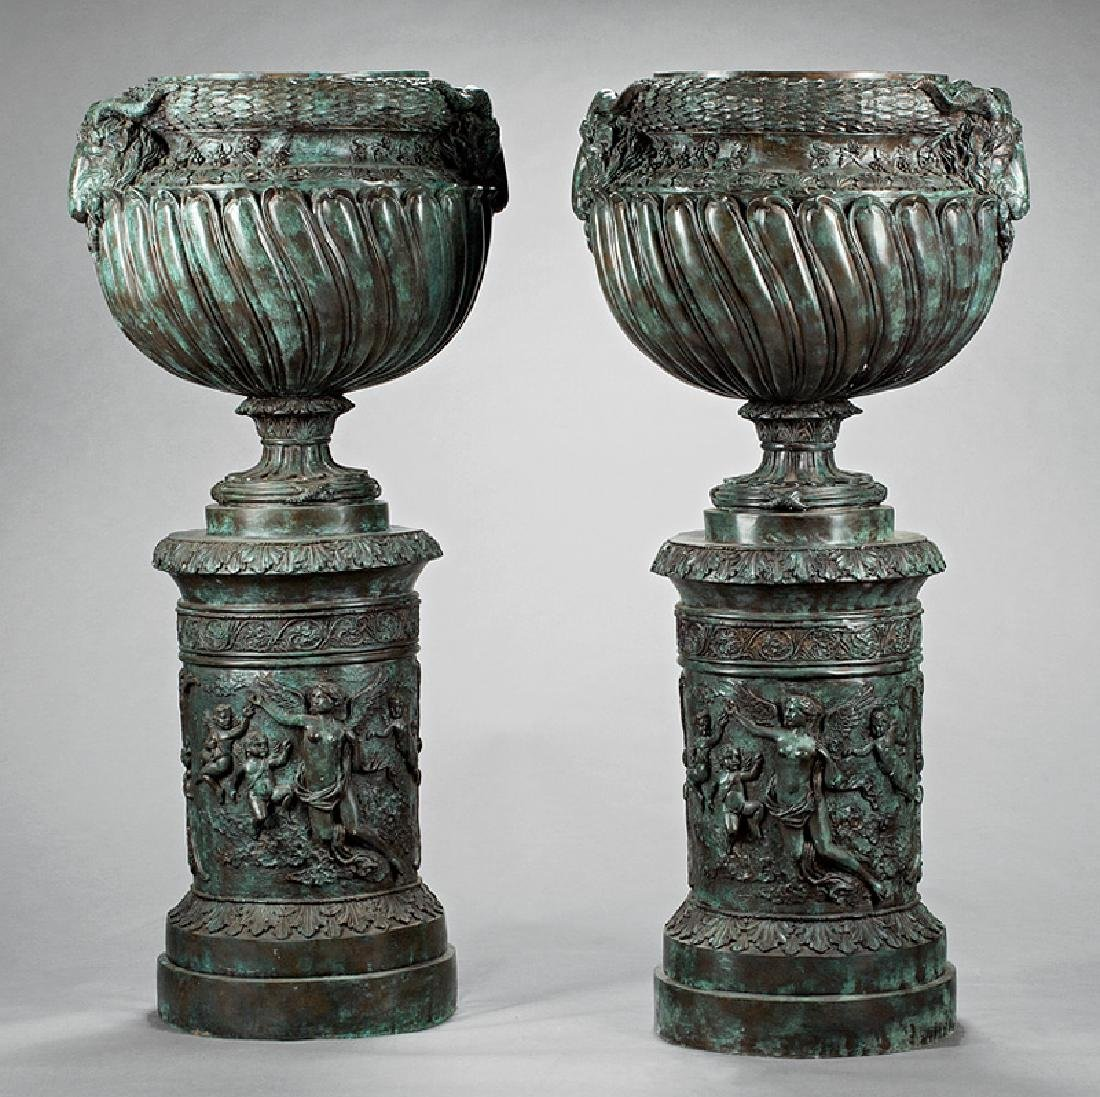 Neoclassical-Style Patinated Bronze Urns